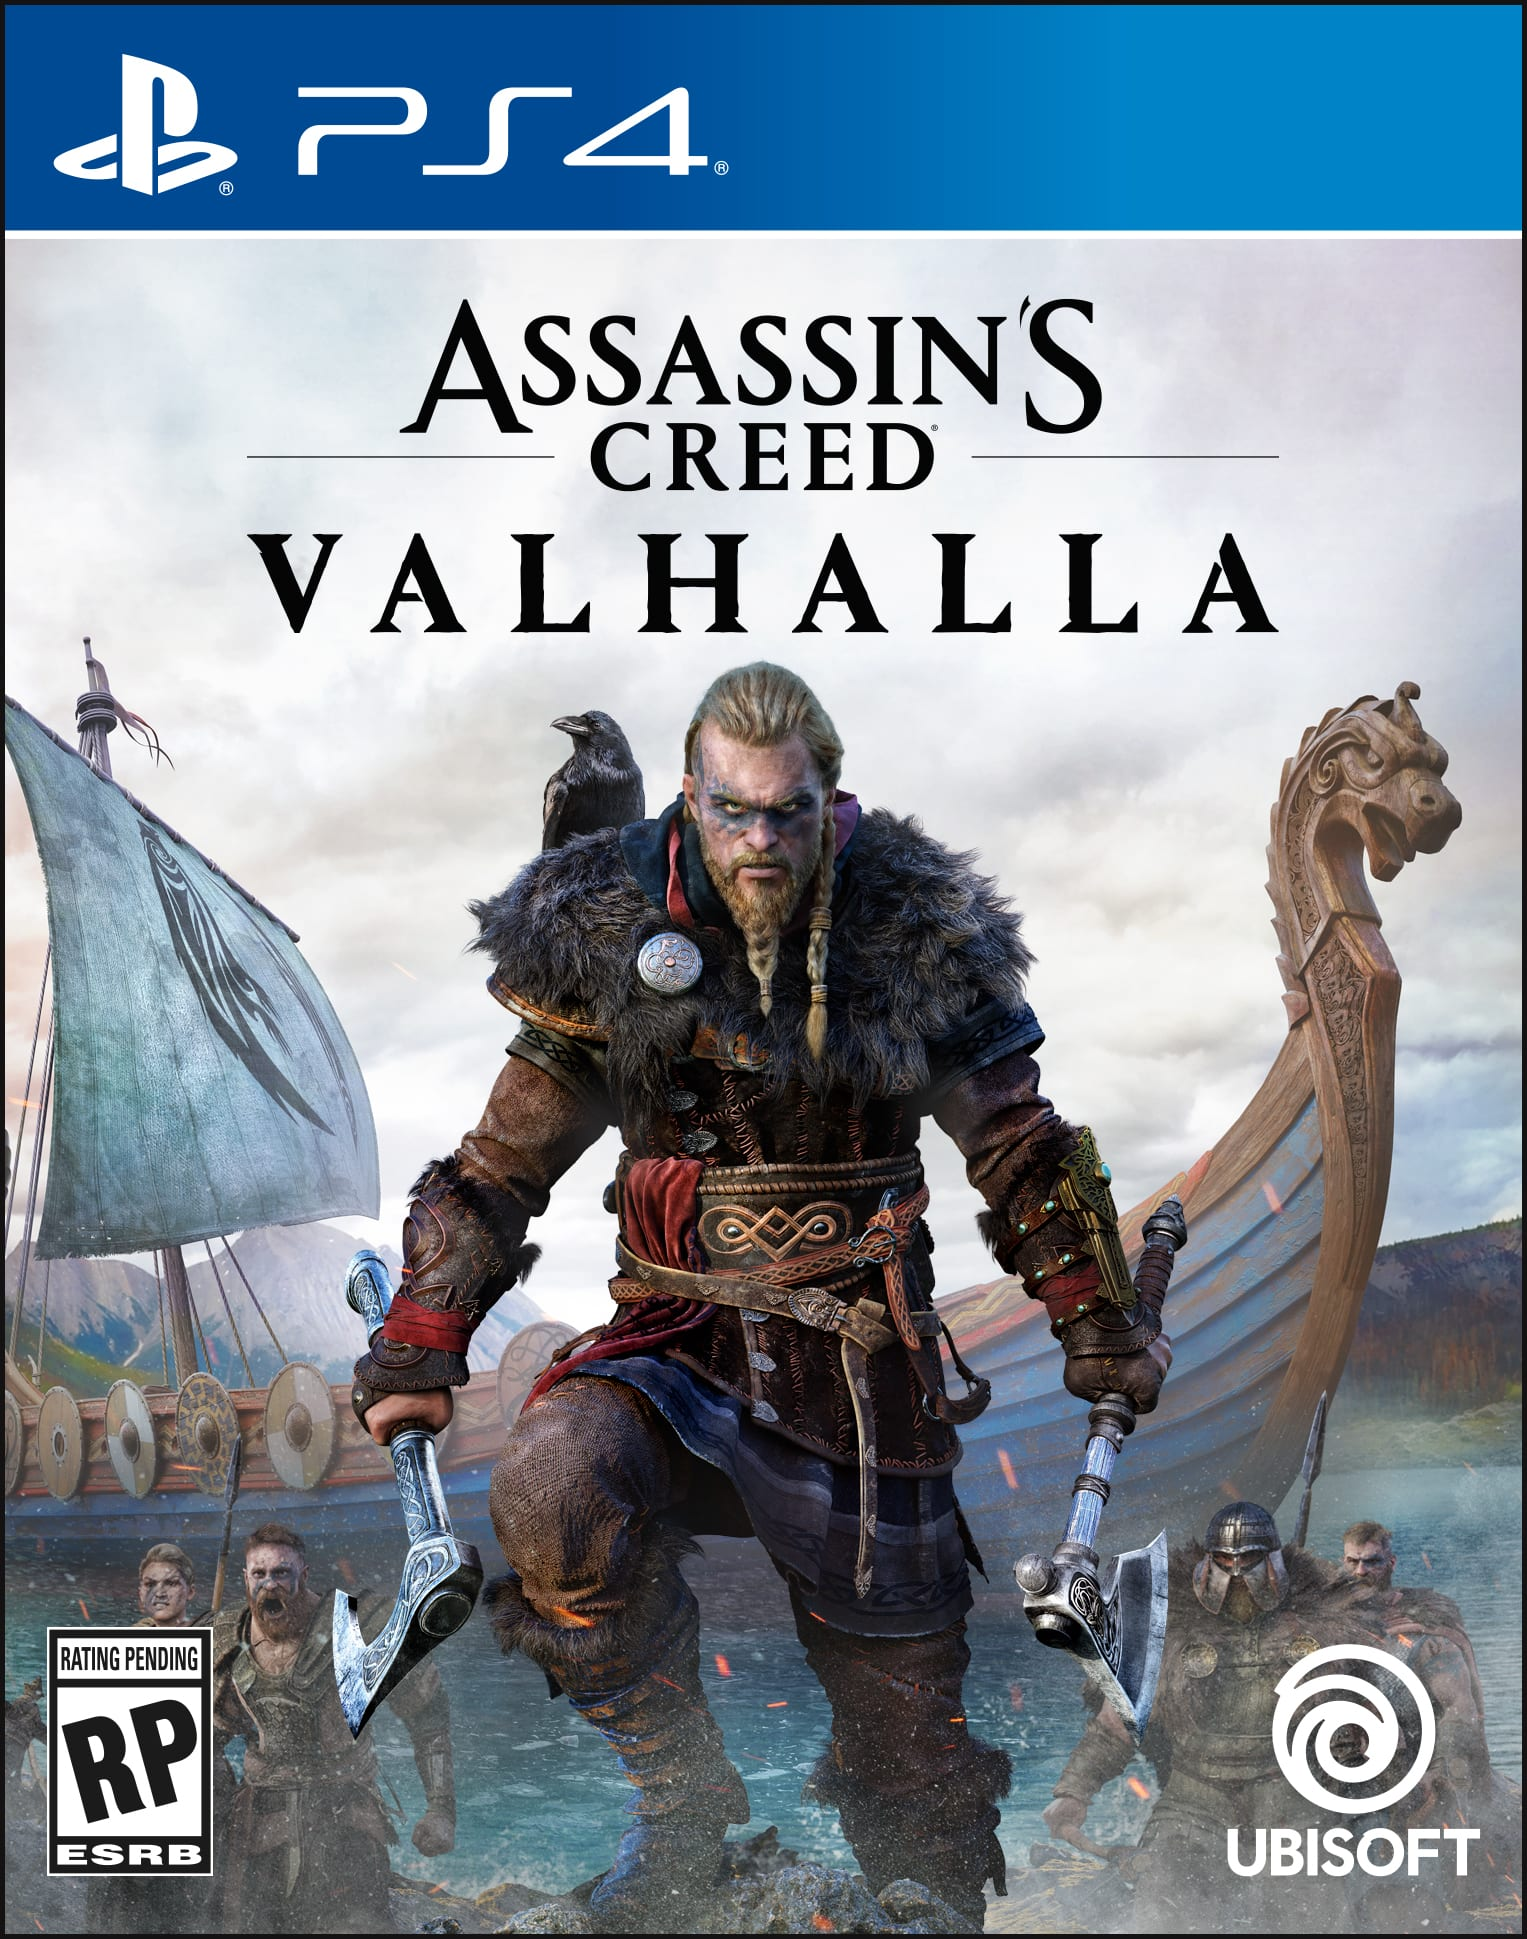 Assassin's Creed Valhalla Pre-Purchase (PS4 or Xbox One)